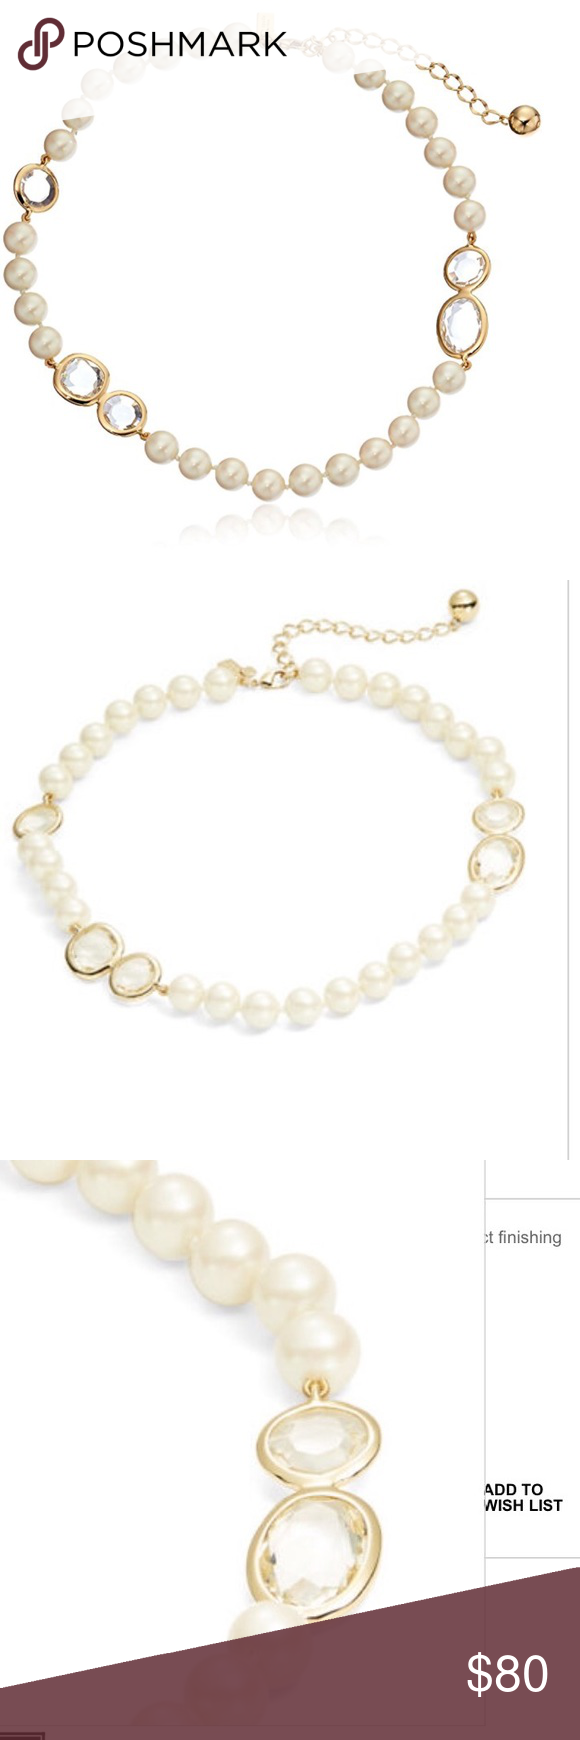 KATE SPADE PEARL CHOKER Beautiful and classic Kate spade Pearl choker with clear stones and gold trim. Classic year after year🎀 kate spade Jewelry Necklaces